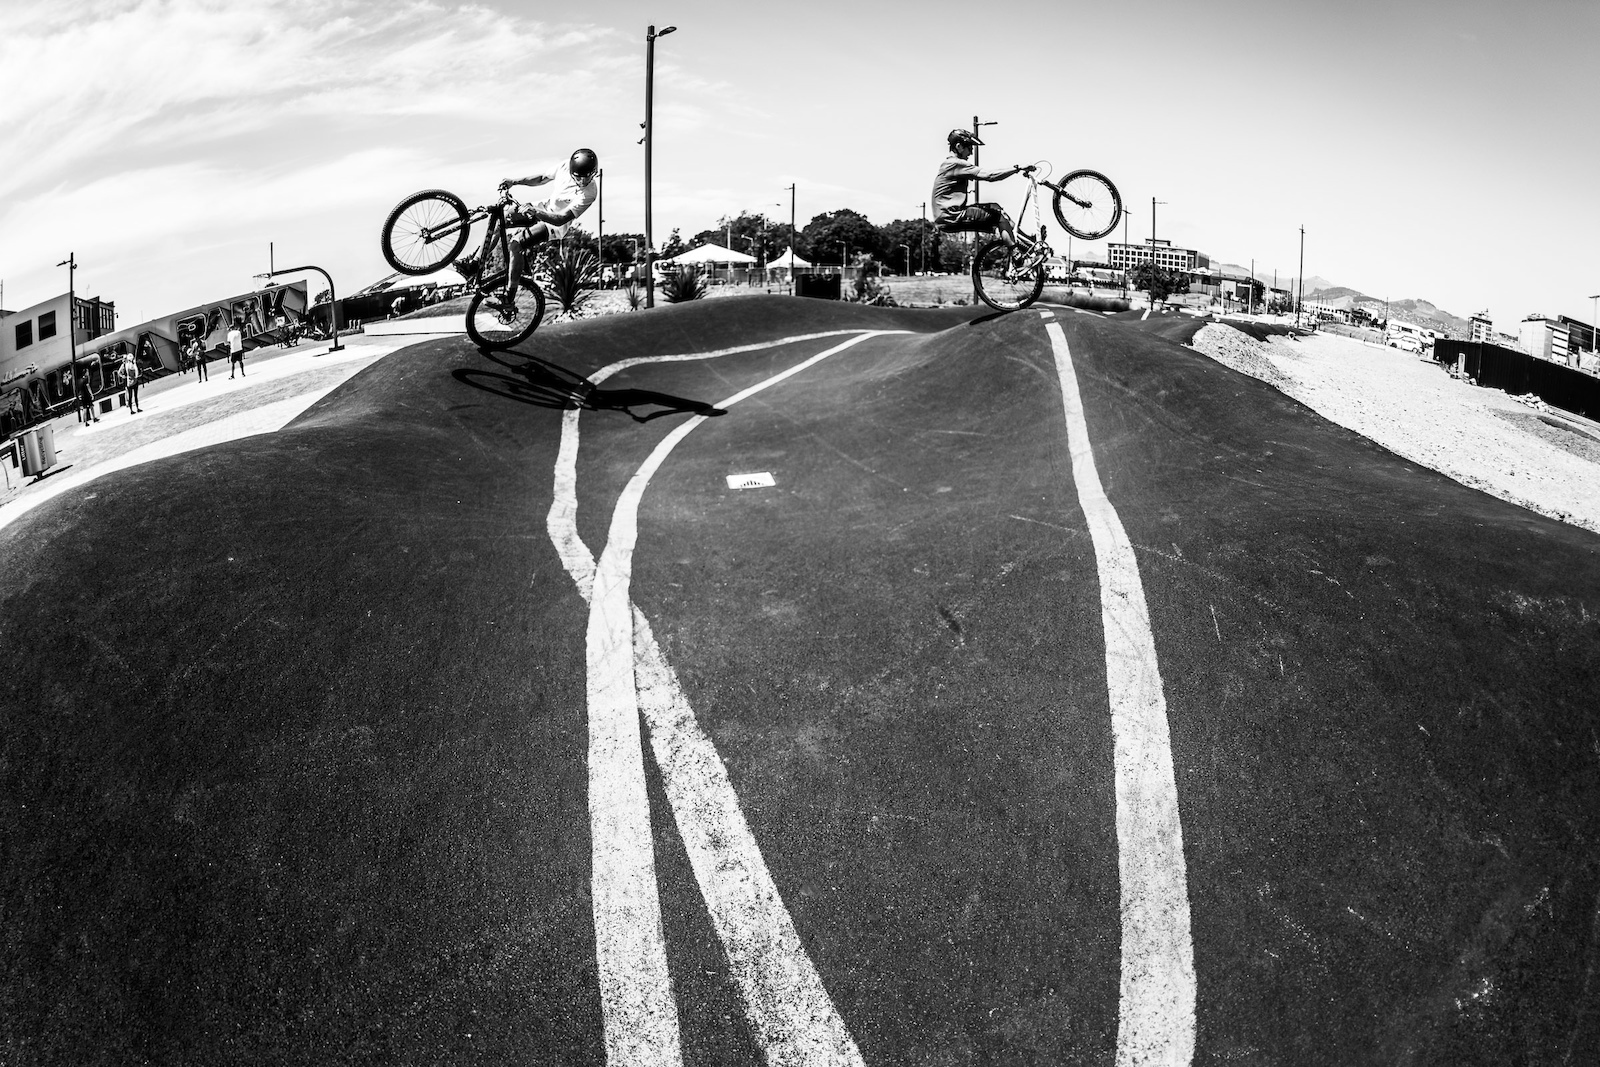 The new pump track in town proves great for a jib session.